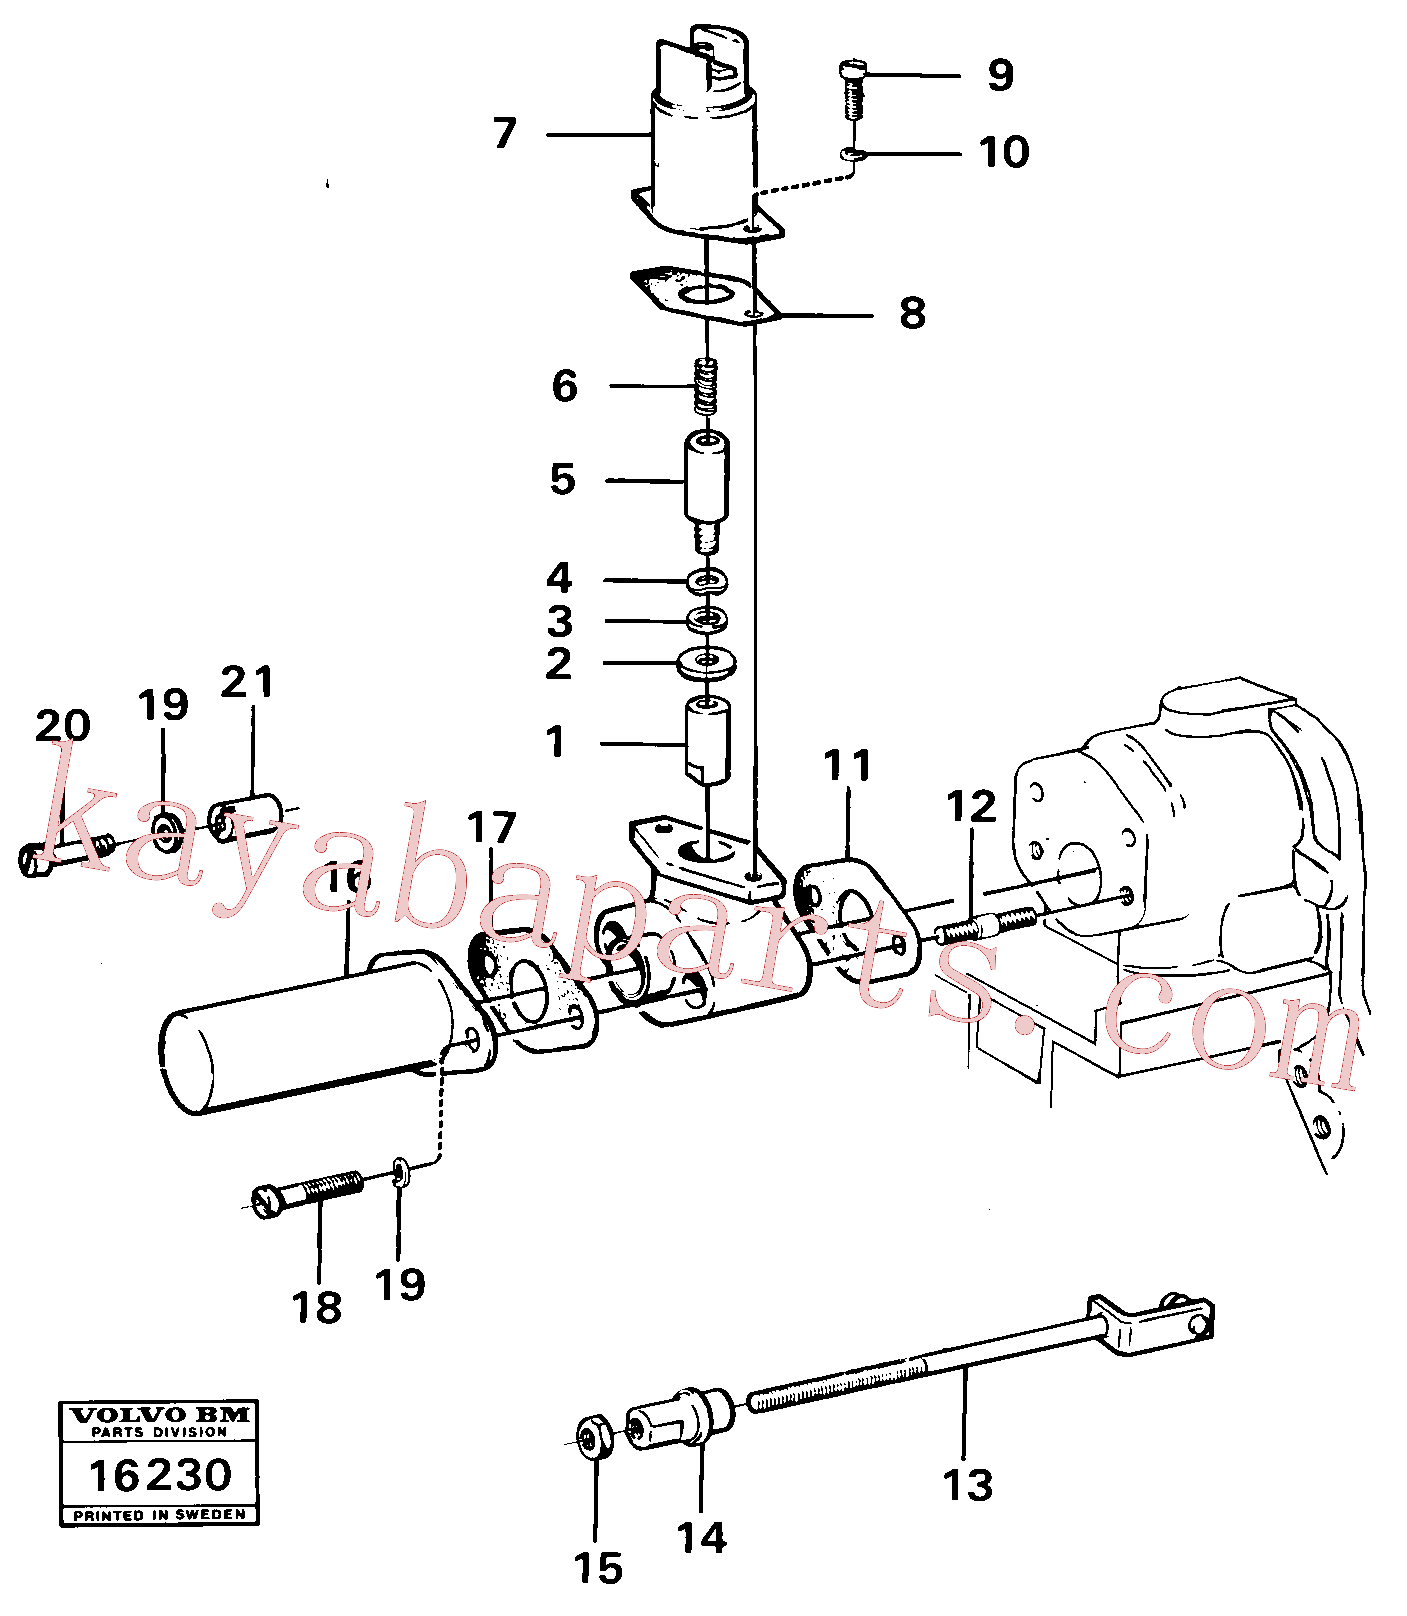 EH6235792 for Volvo Cold-starting device(16230 assembly)